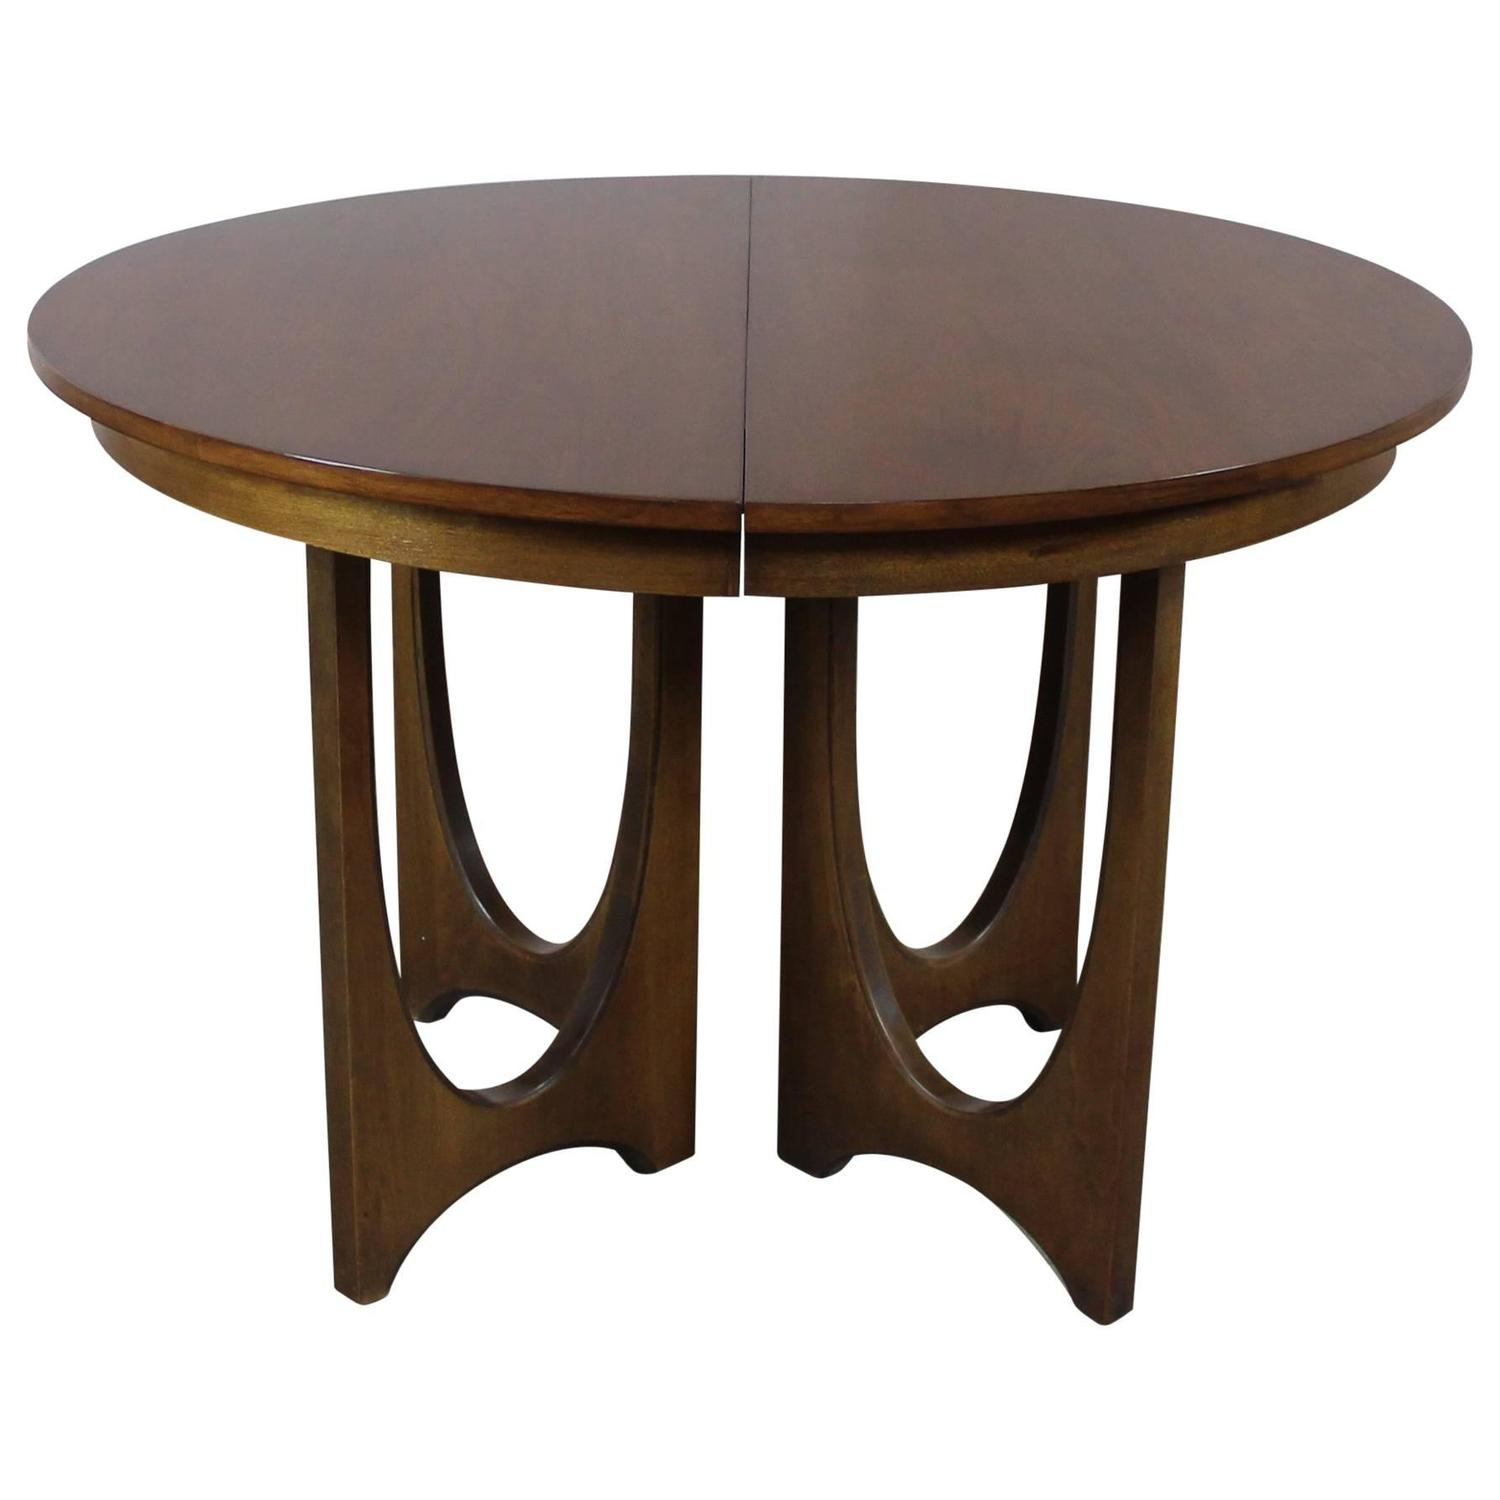 Modern round pedestal dining table - Mid Century Modern Broyhill Brasilia 6140 1645 Round Pedestal Base Dining Table At 1stdibs